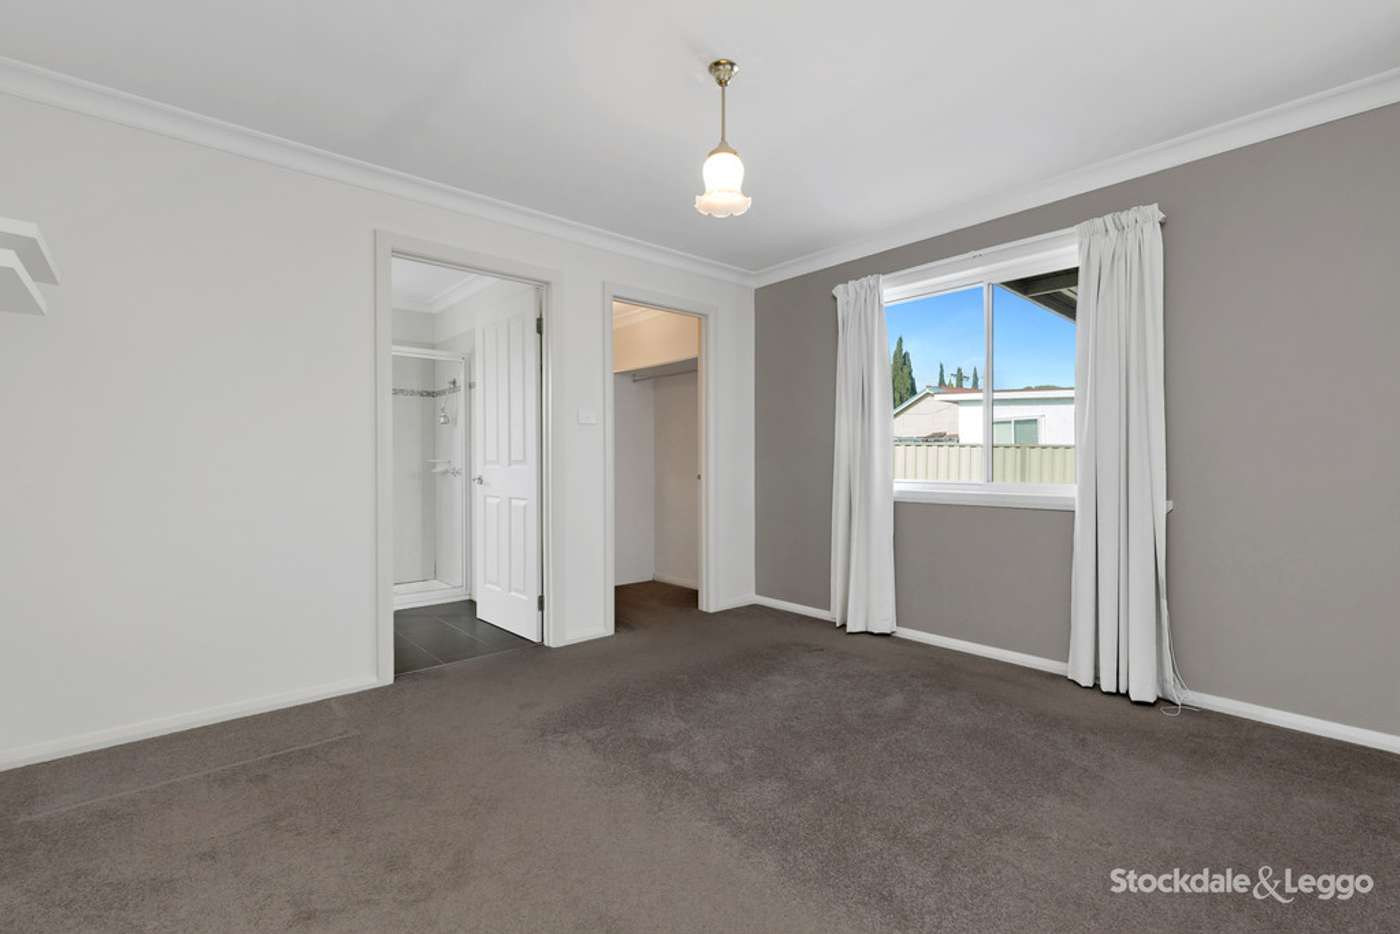 Fifth view of Homely house listing, 2 Pitt Street, Fawkner VIC 3060